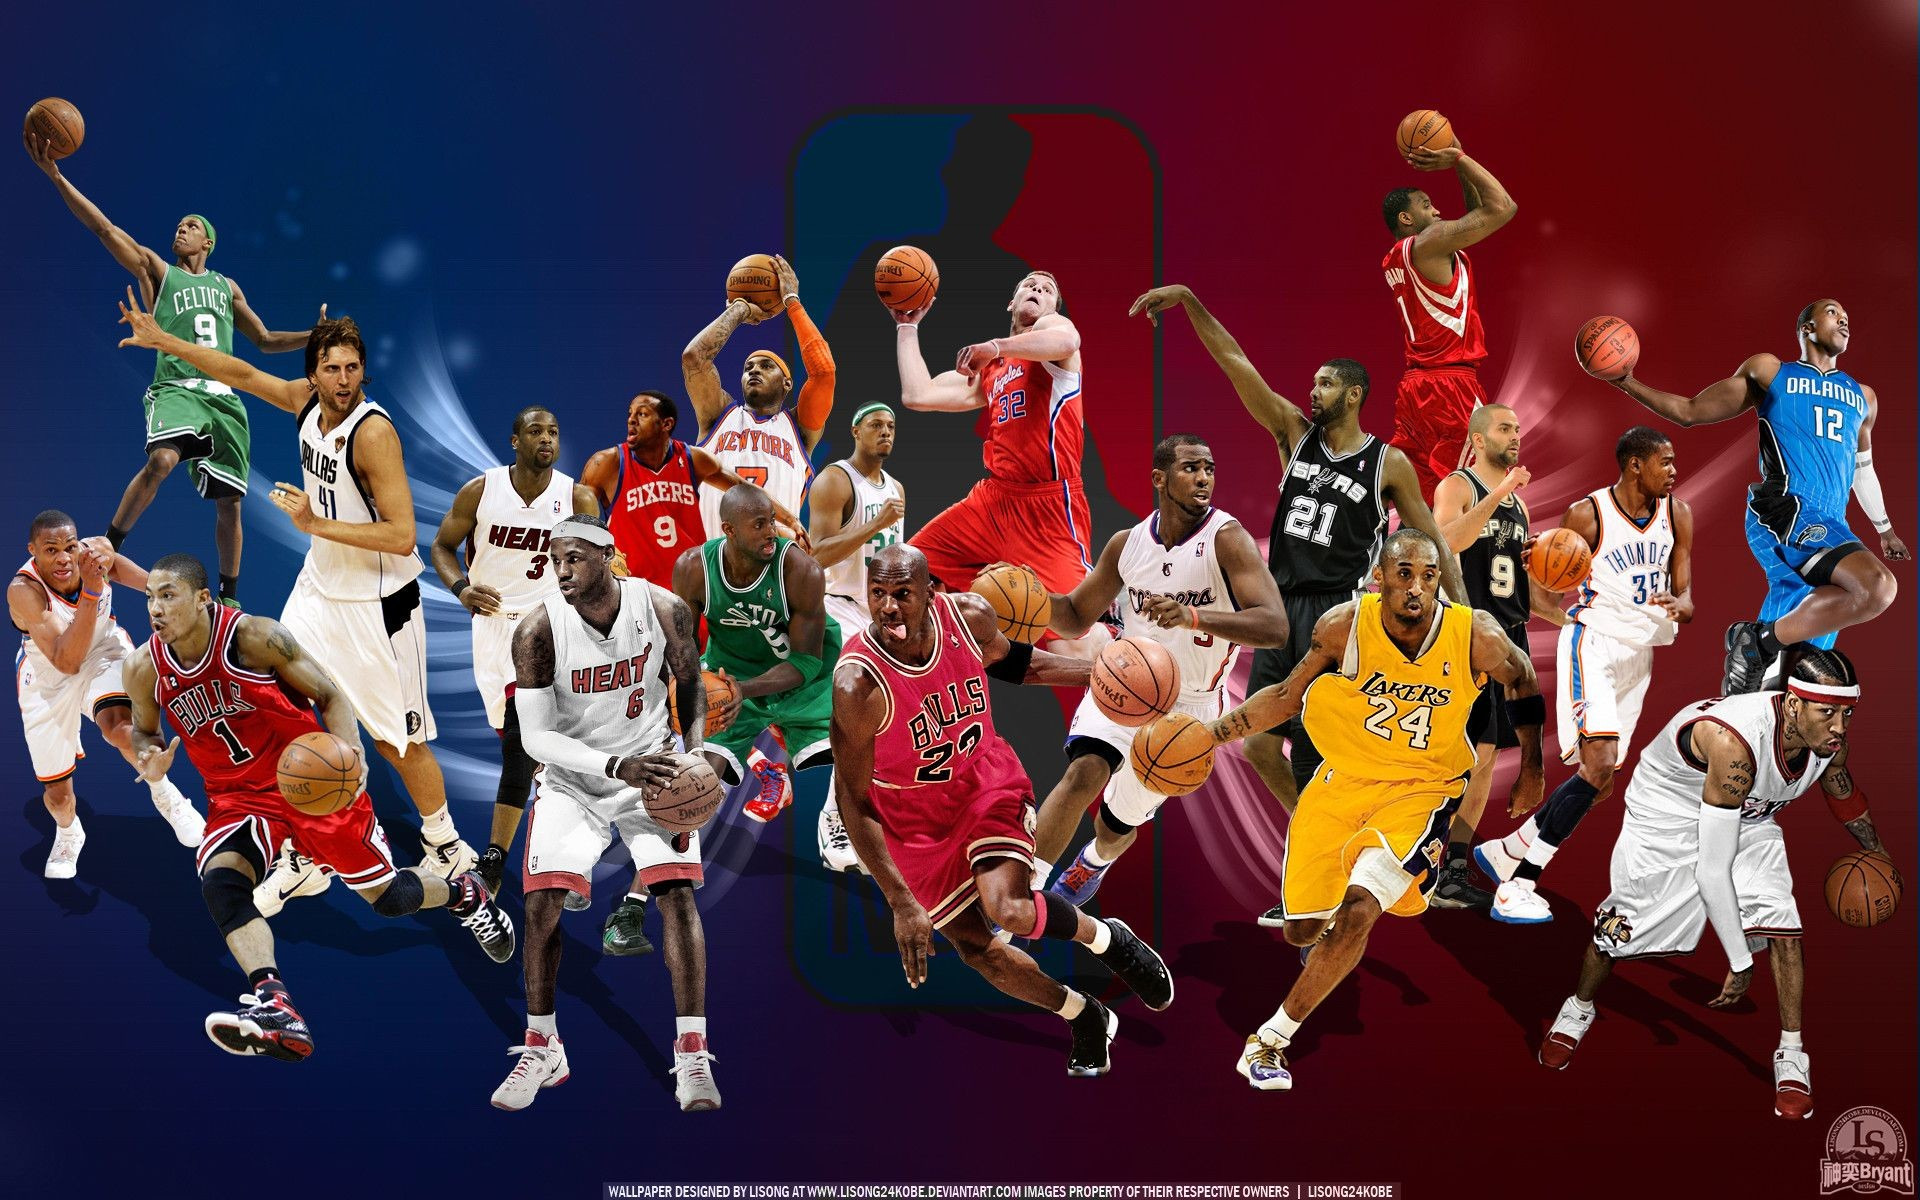 Cool Basketball Player Wallpapers: NBA Wallpapers 2018 HD (69+ Images